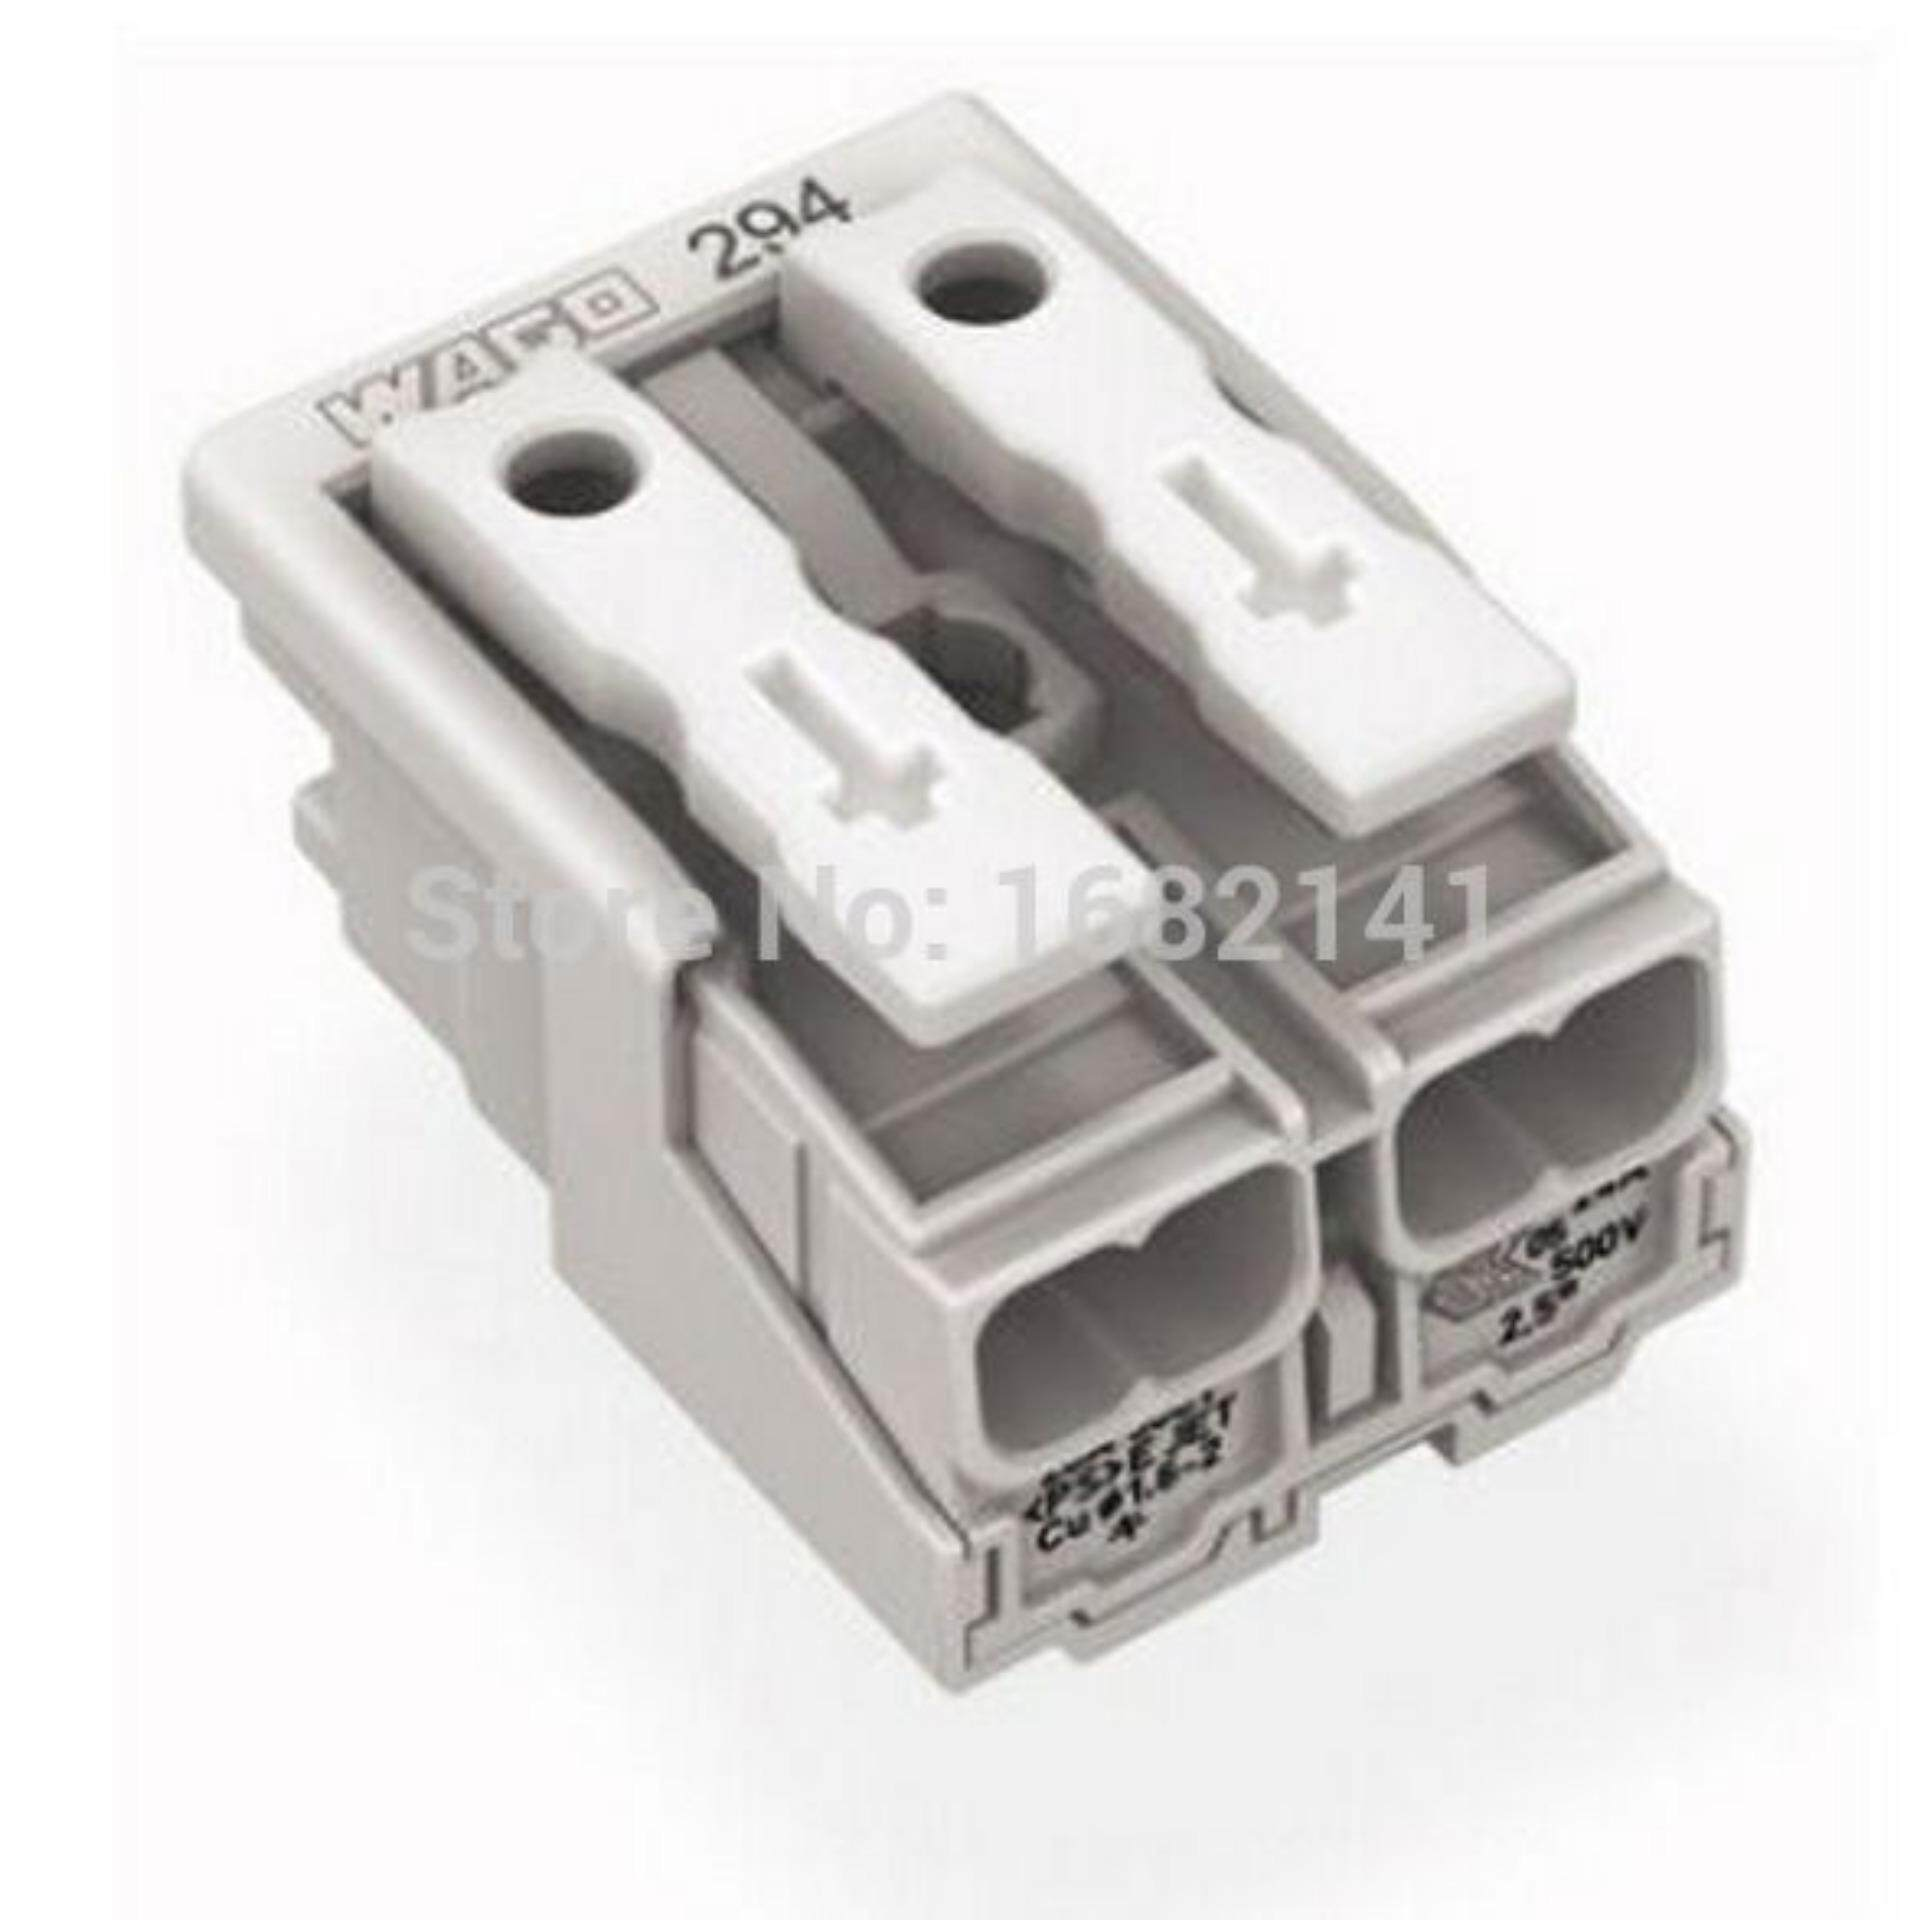 50pcs Double Push Wire Lighting Connector Cage Clamp Wago 224 101 Konektor Kabel Wiring Conductor Terminal 221 413 Lever Nuts 3 Compact Connectors 10 Pk Intlthb207